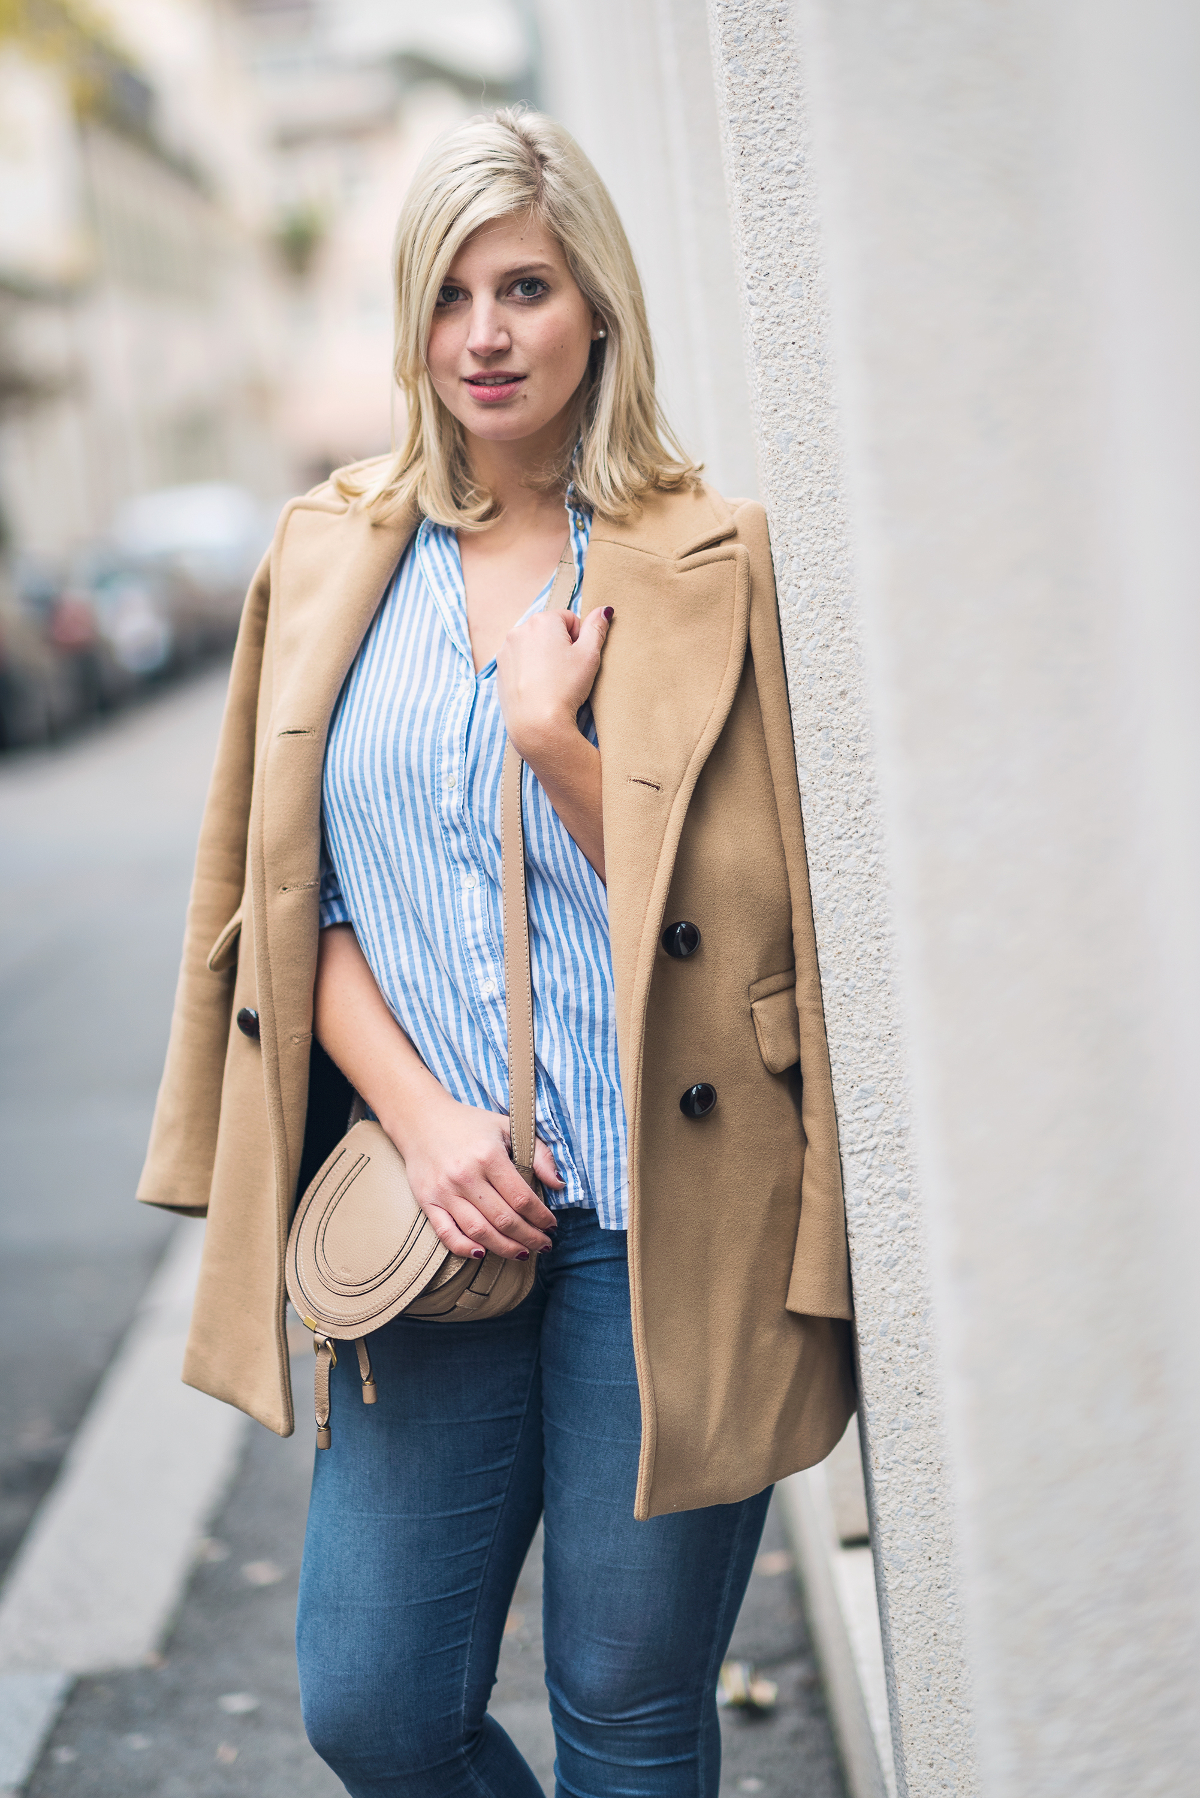 camel-coat-striped-blouse-outfit-chloe-marcie-small